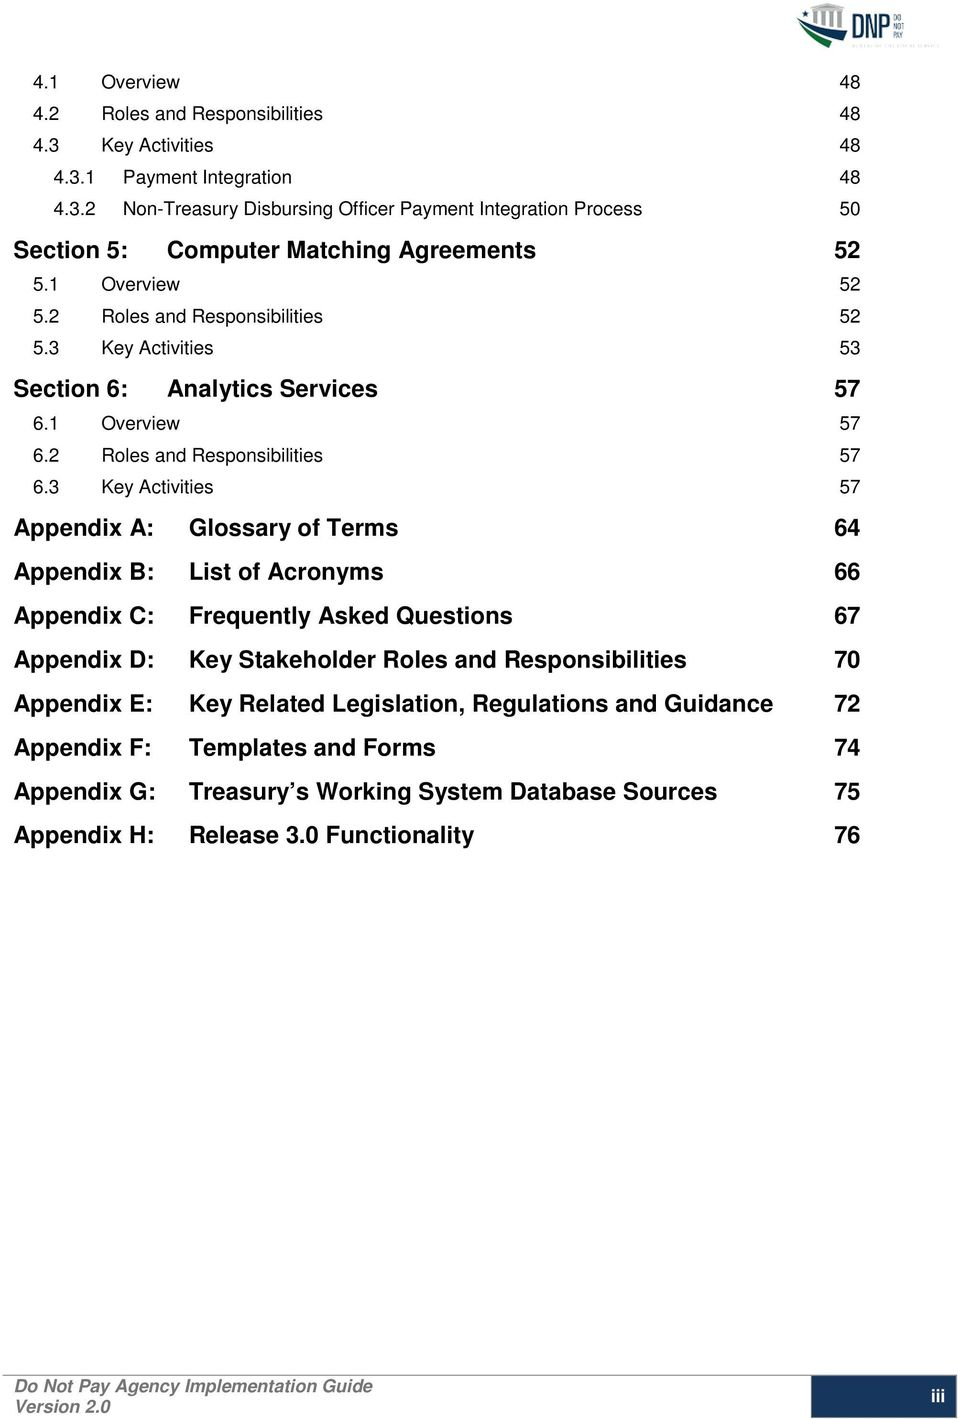 3 Key Activities 57 Appendix A: Glossary of Terms 64 Appendix B: List of Acronyms 66 Appendix C: Frequently Asked Questions 67 Appendix D: Key Stakeholder Roles and Responsibilities 70